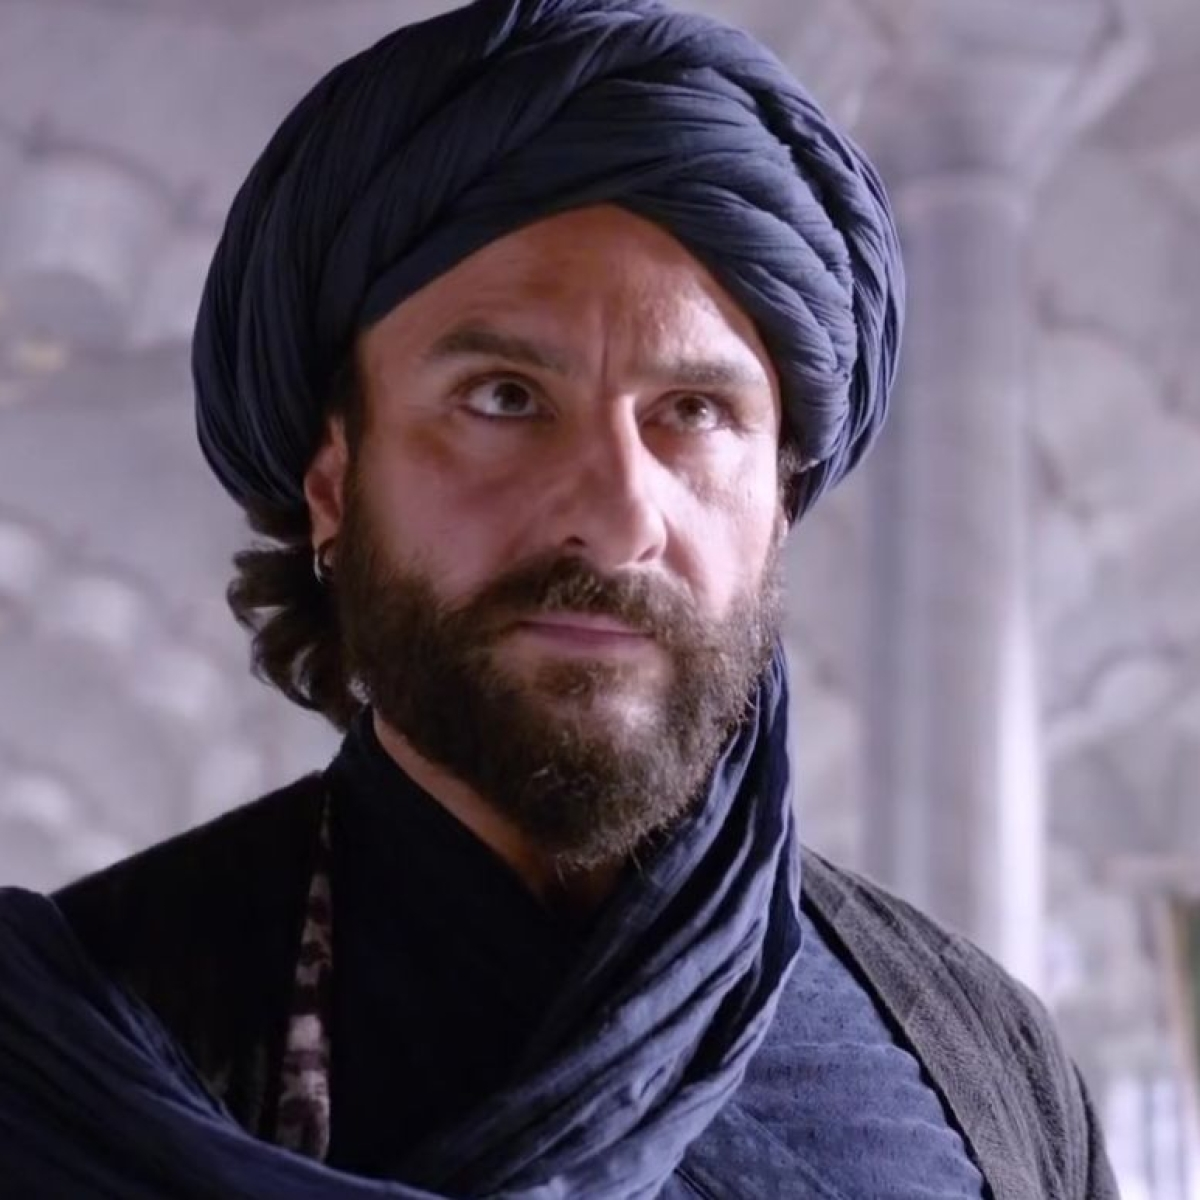 Adipurush: Case filed against Saif Ali Khan in UP court for interview on 'justifying' Ravana's abduction of Sita